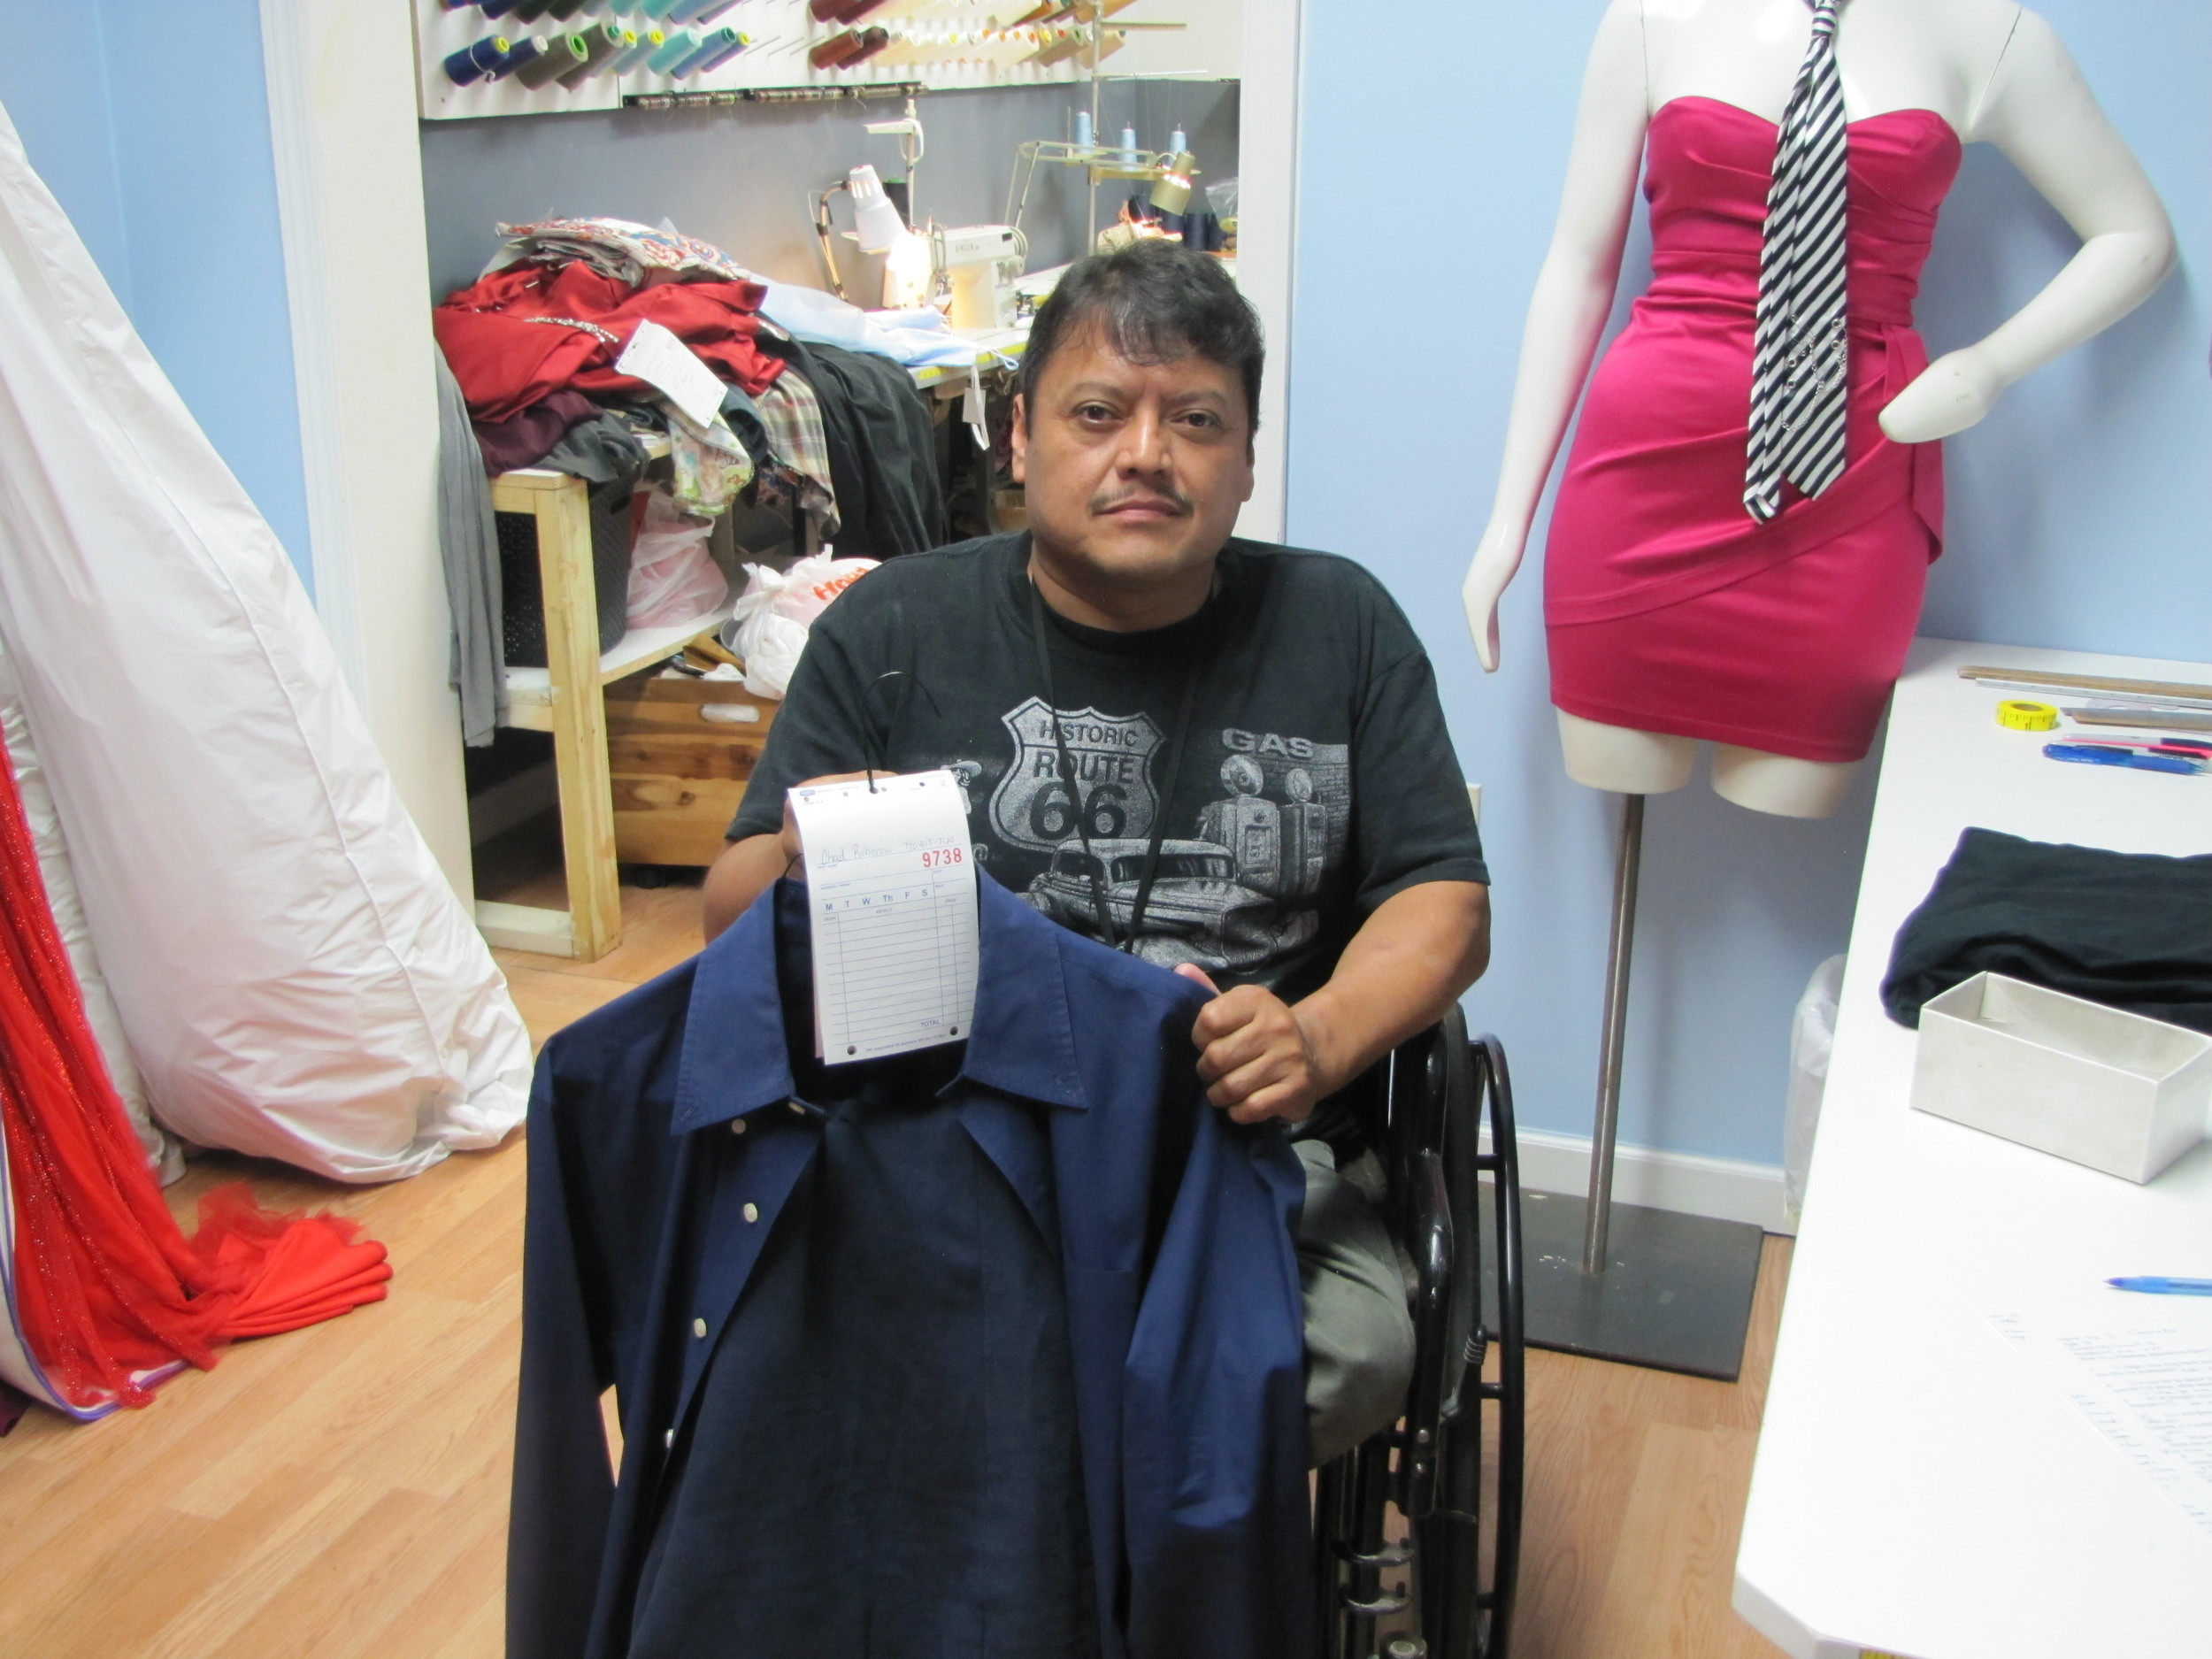 Jose S. Cervantes, 50, has operated Flawless Alterations in Cartersville for the last two years.